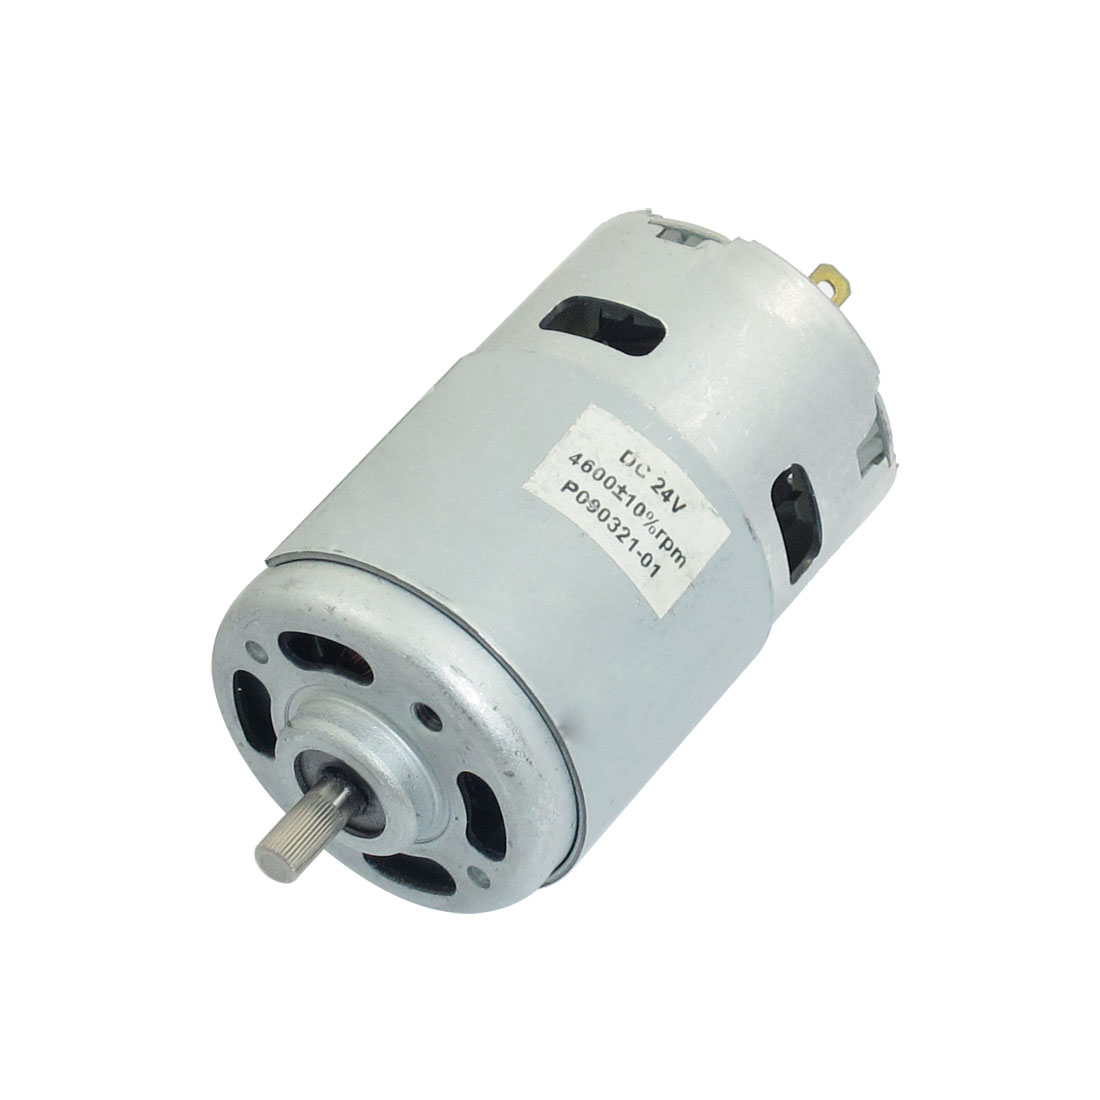 44mm x 66mm Body 2P Electrical Machine Motor 24VDC 4600RPM